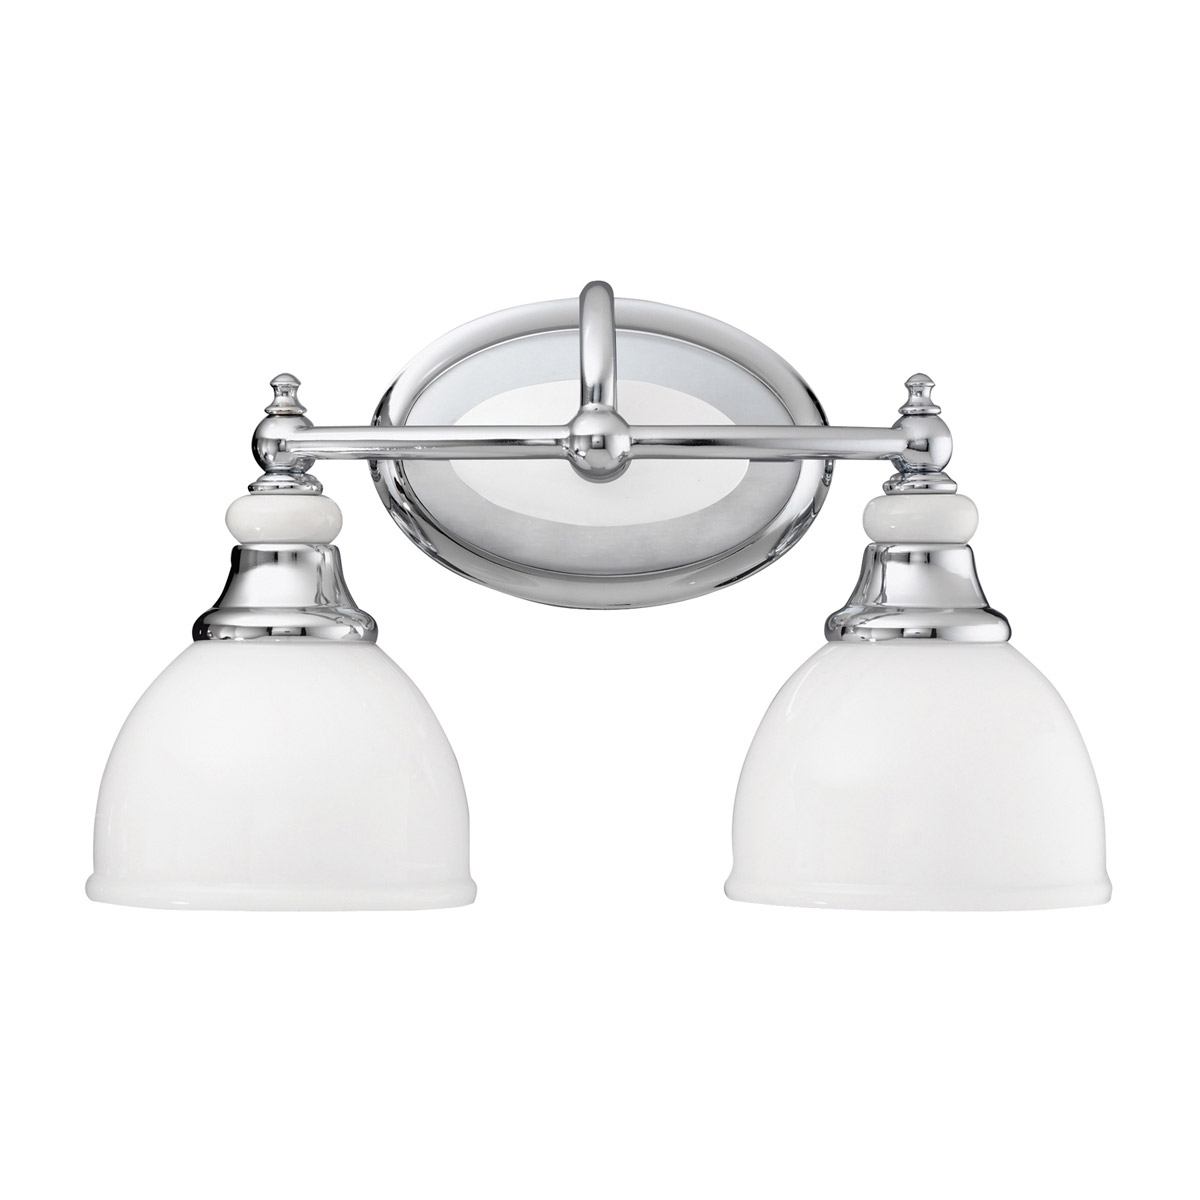 Vanity Lights Kichler : Kichler 5368CH Pocelona Vanity Light